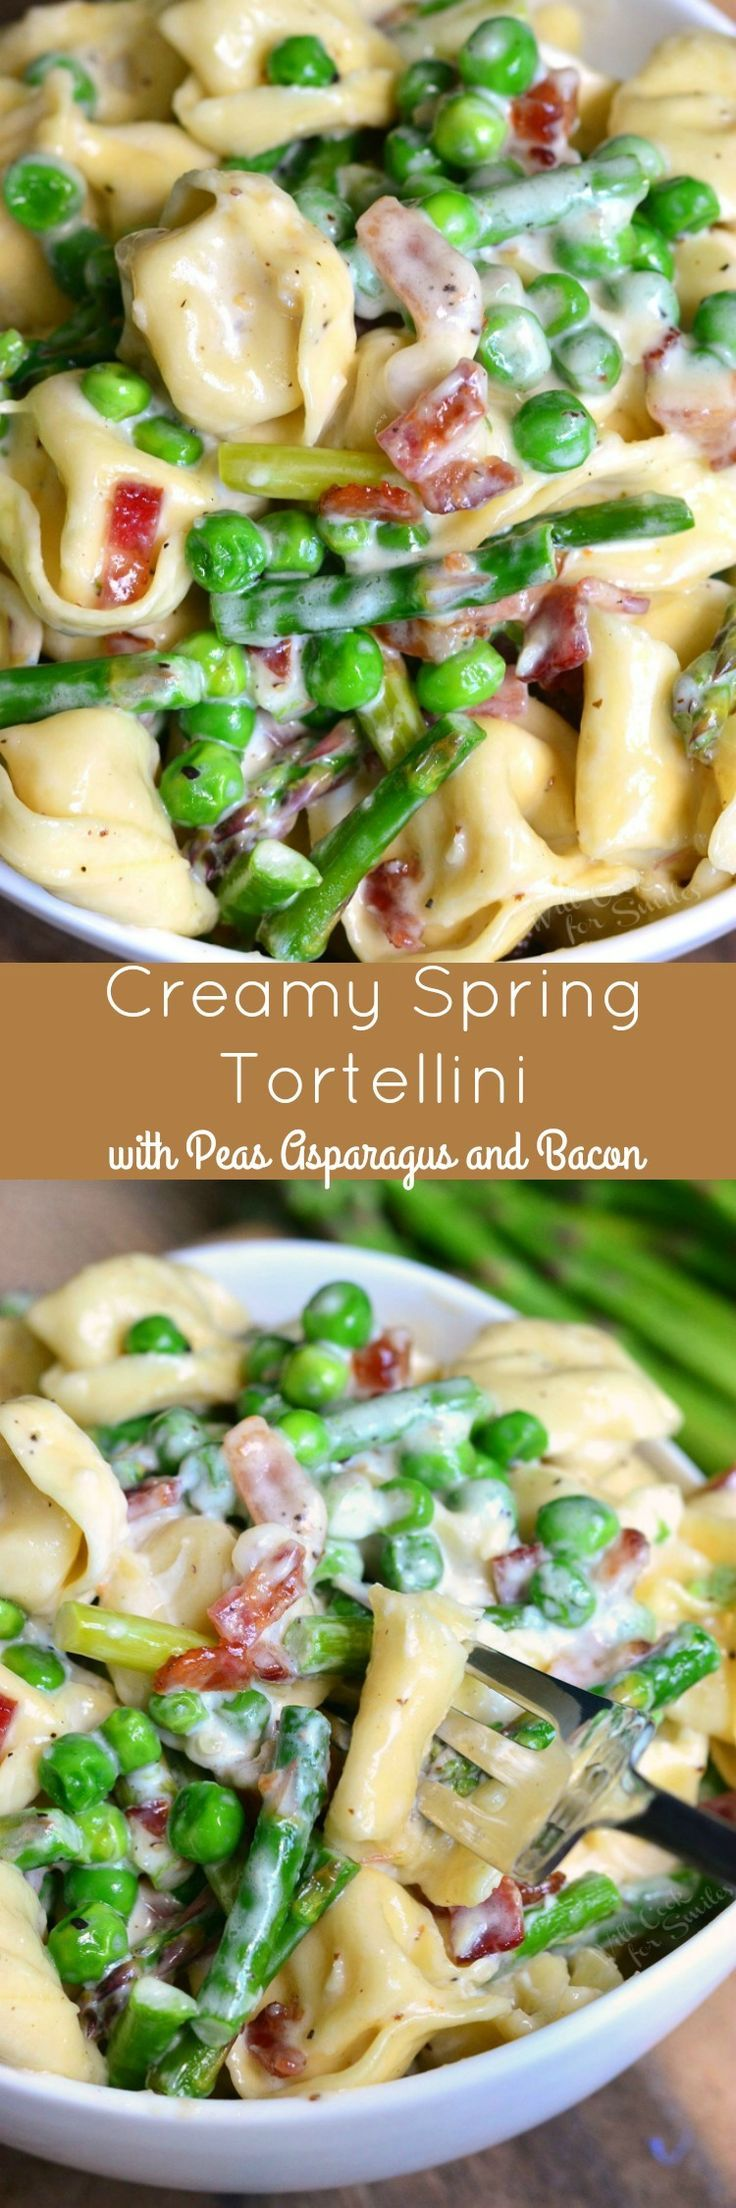 Creamy Spring Tortellini with Peas Asparagus and Bacon. Delicious creamy tortellini dish made comforting with Parmesan cream sauce and crispy bacon and it's also loaded with peas and asparagus. (Noodle Recipes Pasta)